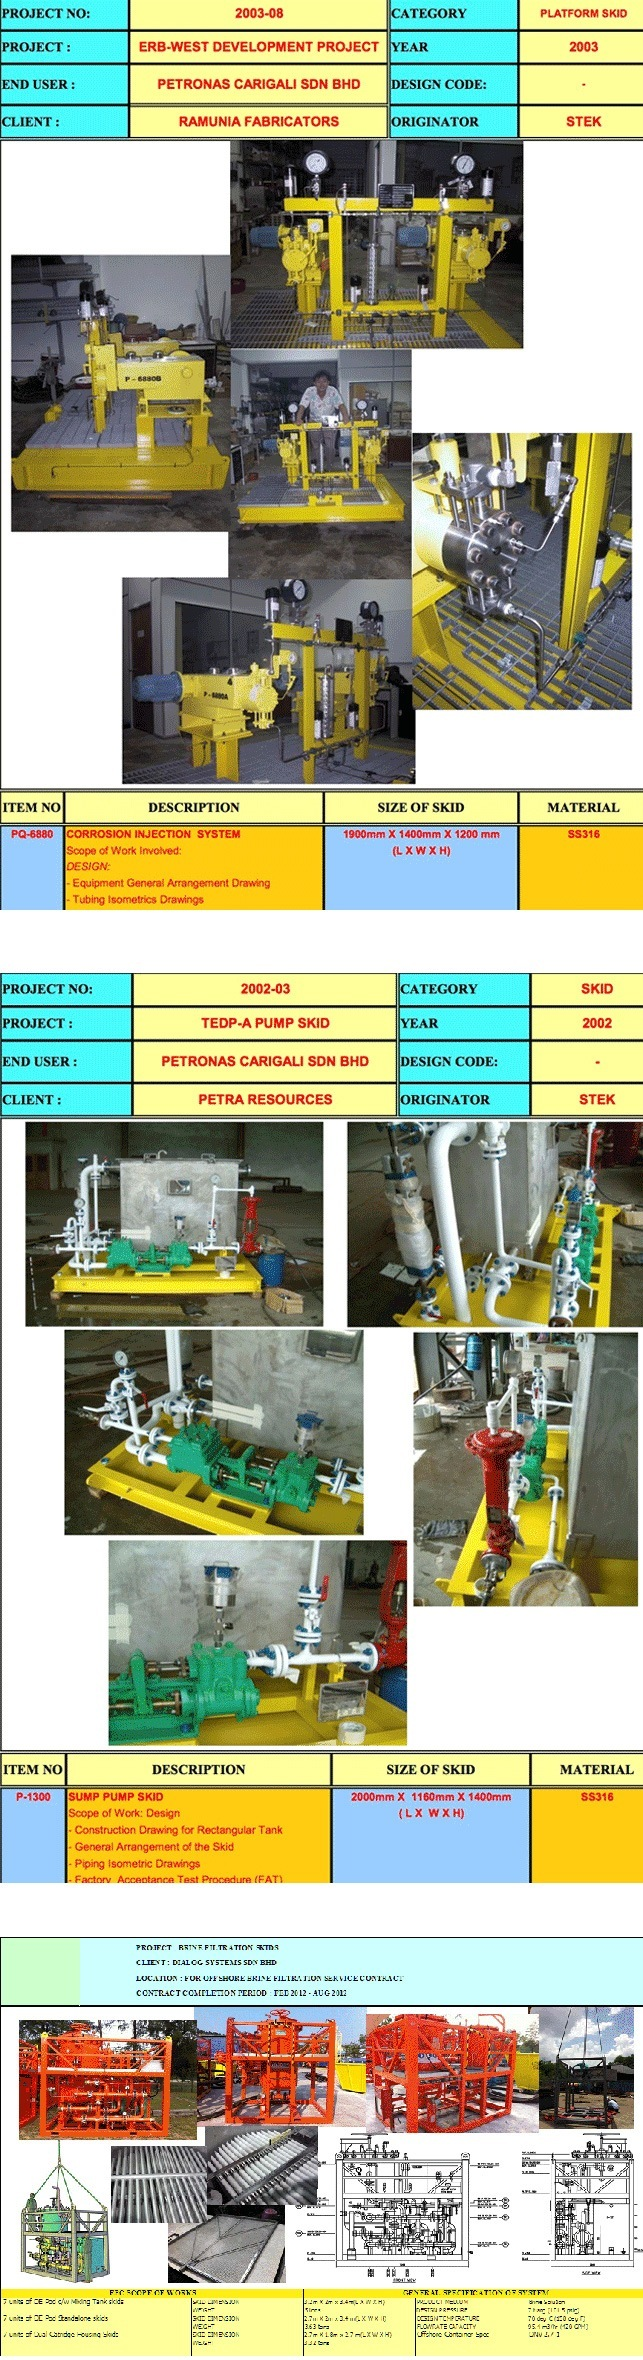 products-process-skid